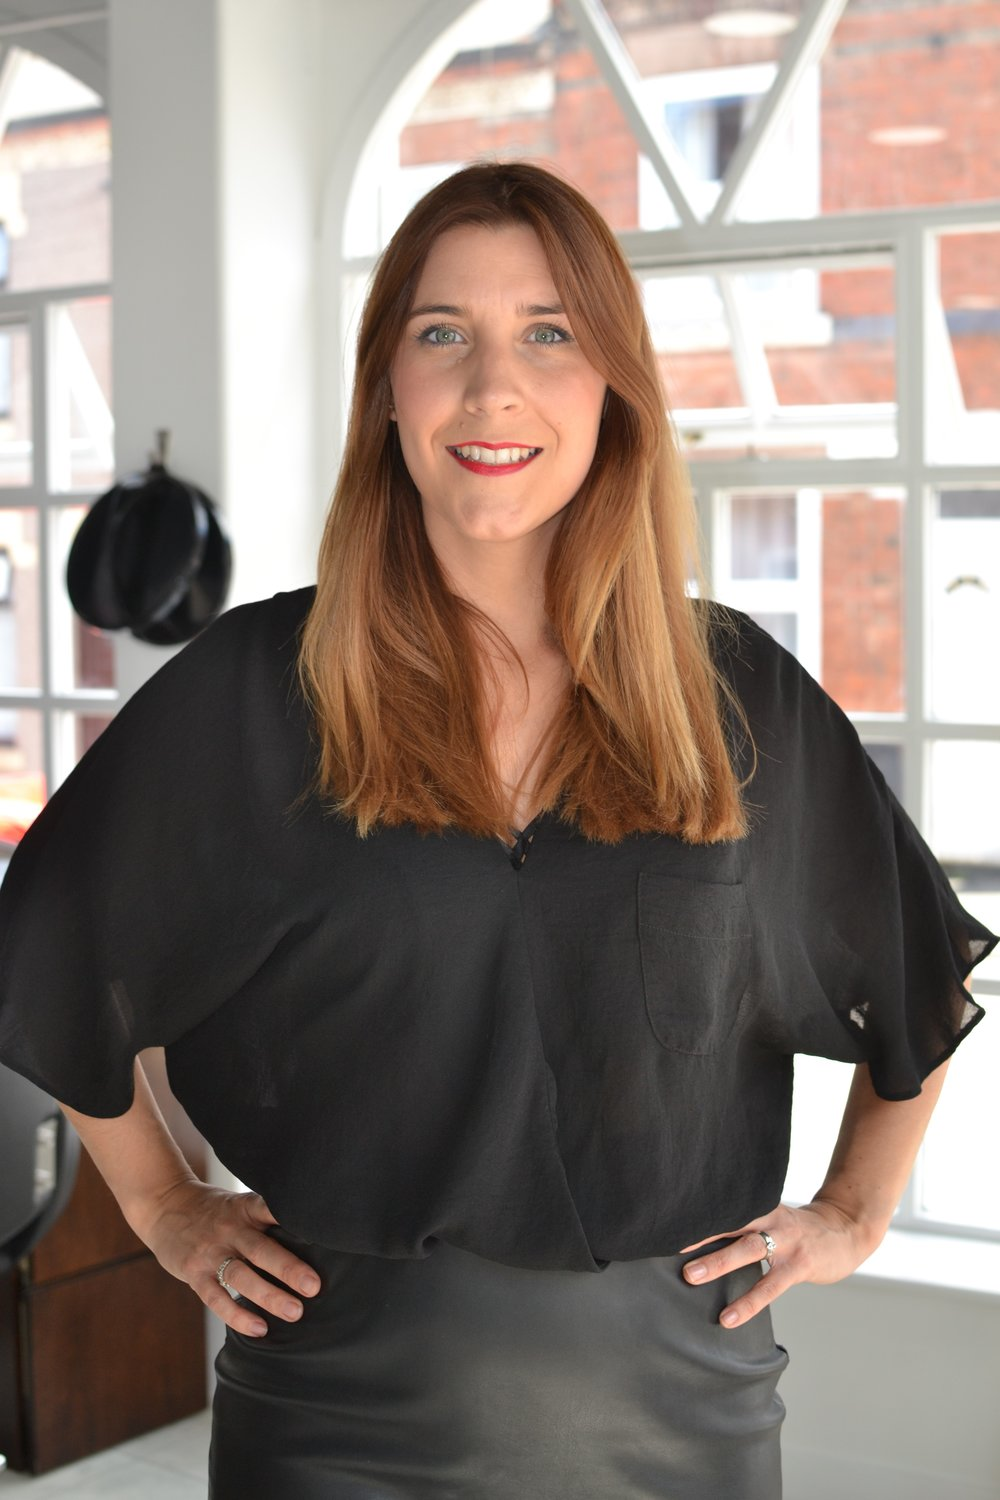 Hayley - Salon Director   Hayley Is The Salon Owner & Creative Director. She Now Works Behind The Scenes, On All Things Business, Education, Customer Service & Keeping An Eye On New Trends & Services To Bring To The Salon.  Hayley Developed The Prescriptive Salon Ethos To Teach Our Clients How To Acheive In Salon Results At Home & Empower People With Knowledge To Make Informed Choices With Their Hair & Image.  She & Ramona Work Tirelessly To Ensure Our Whole Cocco Team Deliver Excellent Customer Service, Give Honest Advice & Keep Our Clients Happy!